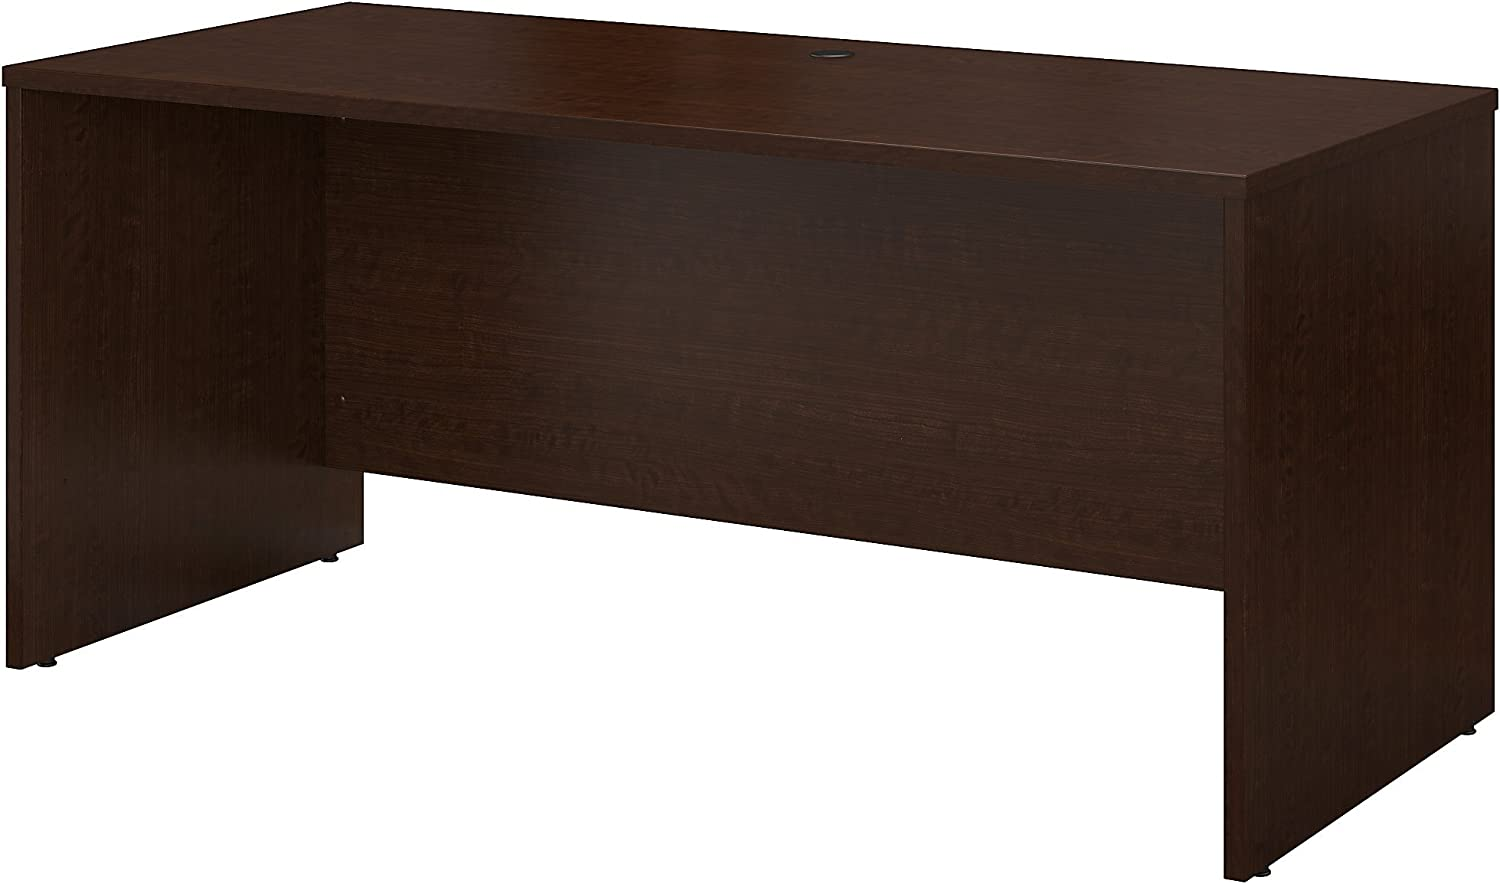 Bush Business Furniture Series C 60W x 24D Credenza Desk in Mocha Cherry